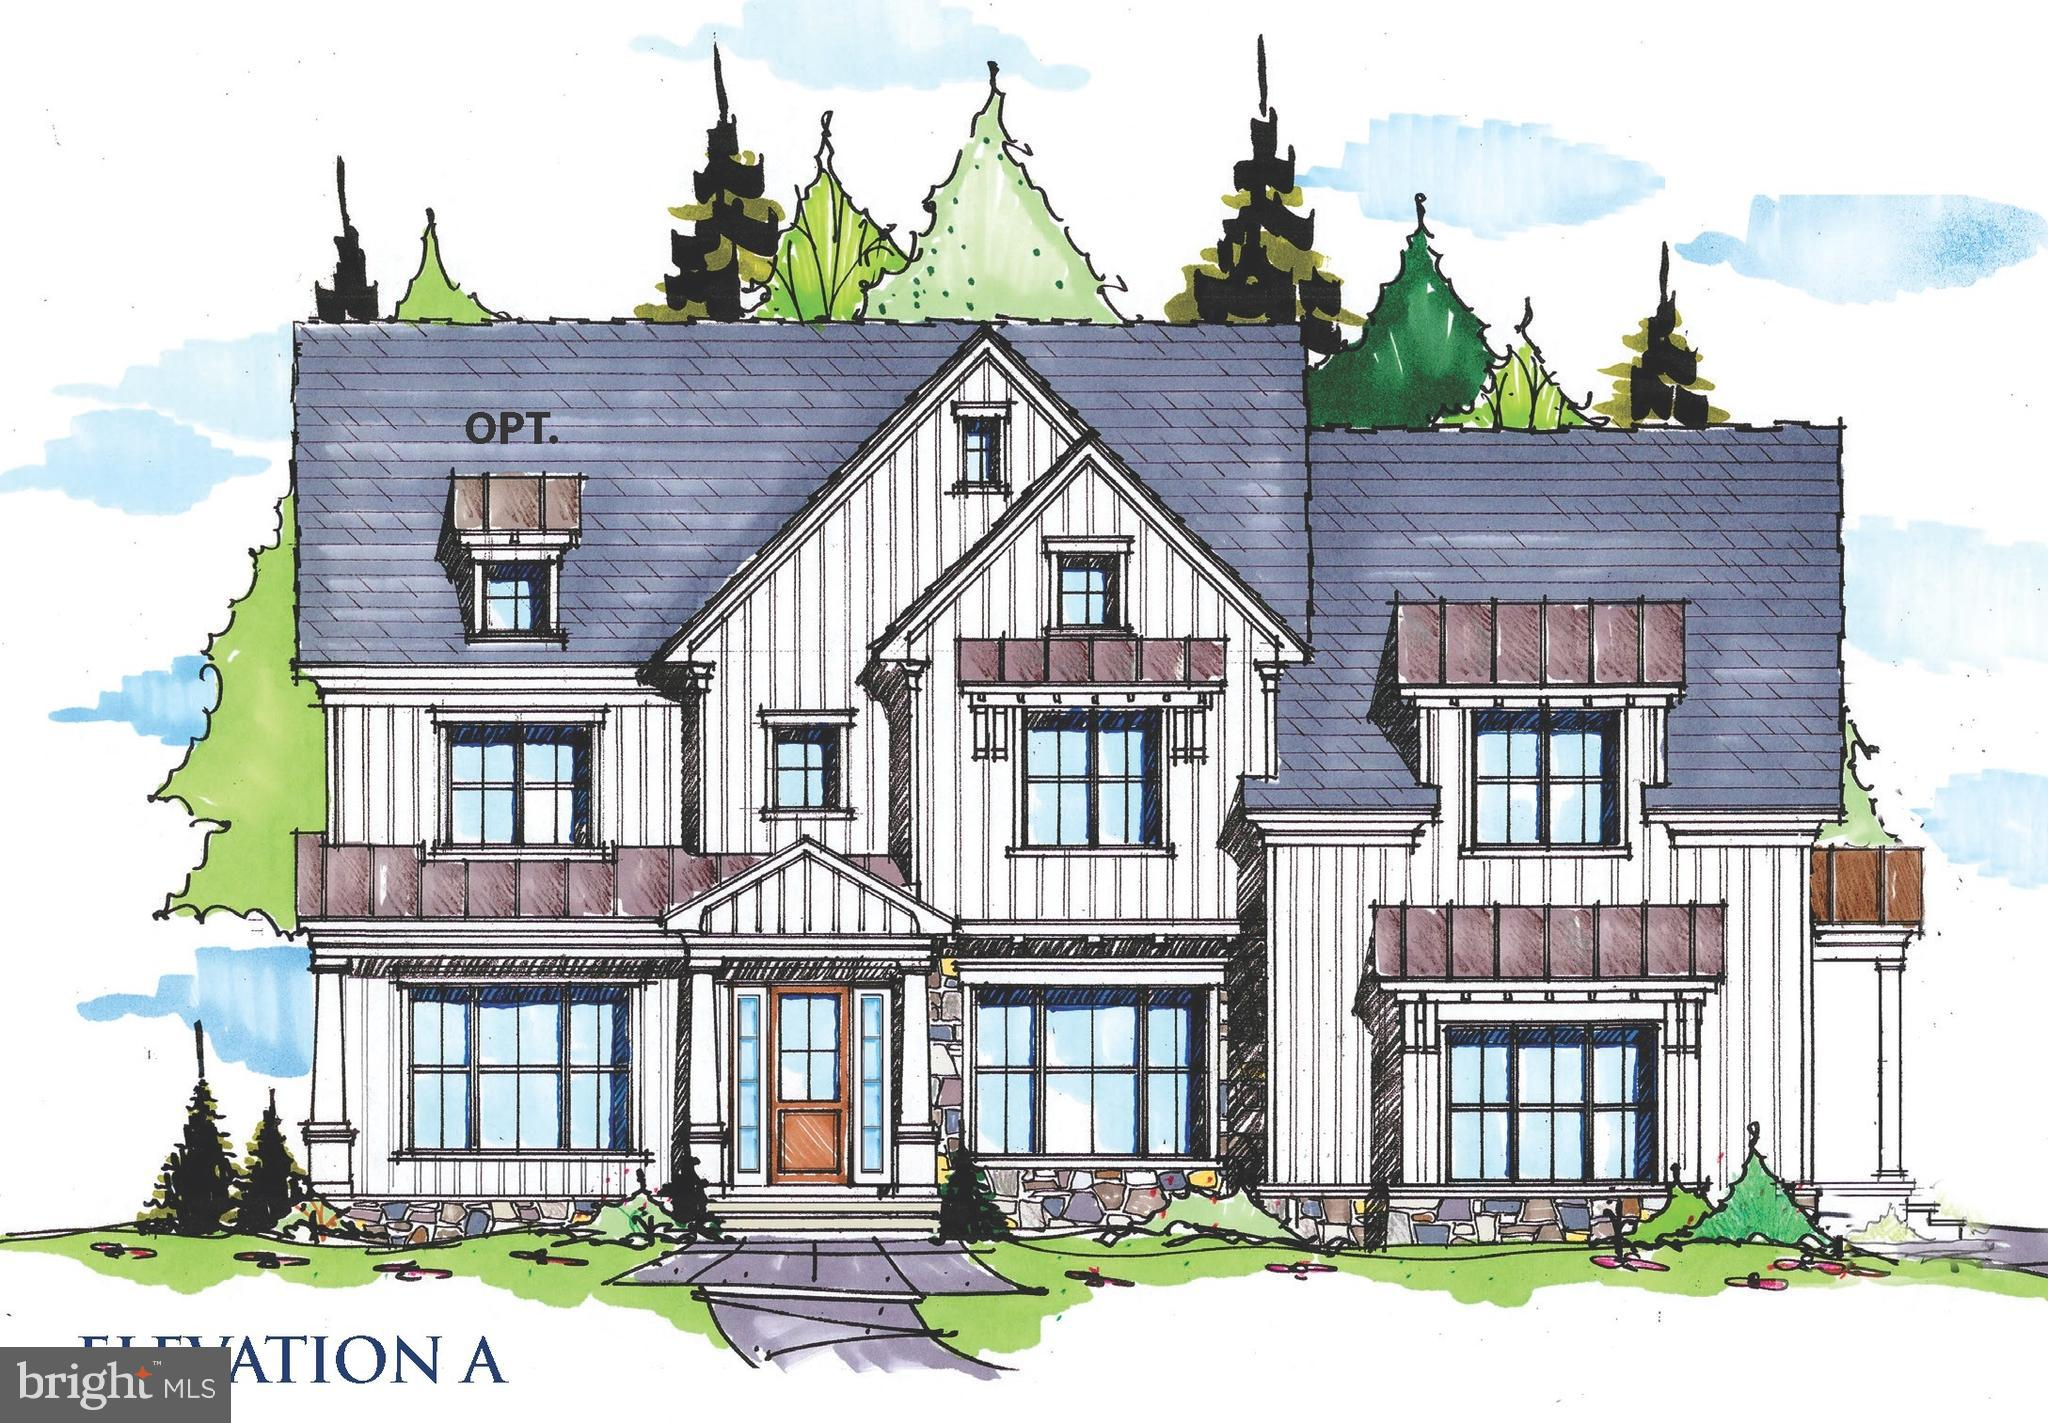 5 HOMES SITES LEFT OUT OF 12!  Don't miss your opportunity to Build in TIBURON! Bentley Homes'  new CHANDLER PLAN is just 1 of 4 Great Home Designs  that can be built in as few as 12-15 months depending on lot choice. Located in highly desirable  Easttown Township with T/E Schools and  less than 5 minutes from EA.  This new exciting Chandler Design features 10' First floor Ceilings with front and rear staircases including the 3 story open main staircase connecting all floors of the home in elegant style.    At 4600+ Sq Ft, this home offers all you could want in terms of comfort and space to suit your personal and entertainment needs.  Formal rooms and open spaces allow for flexibility in household pursuits.  The main floor features a Library, Formal Dining Room,  Great Room, Kitchen, Butler's Pantry, Breakfast Room, Mudroom with Pantry Storage and W-I-C, and (2) Powder rooms.  This 4 Bedroom 3 full and 2 Half bath plan offers the potential for more customization to add more bedrooms and bathrooms or to finish the lower level with standard 9' foundation walls. Love to entertain, consider adding the catering kitchen to complement the bar service possible from the butler's pantry with sink and bar space revealed behind 8' tall standard 2 Panel barn doors.  Upstairs you will find a Primary Bedroom Suite that spans the entire rear of the home with 2 W-i-Cs with windows, and a Spa Bath Retreat with dual vanities, makeup counter, 5 x 8  shower with frameless glass shower door, and spacious linen closet.  A lounge area, 3 Bedrooms with W-I-Cs,  2 Bathrooms , hall linen and 2nd floor Laundry Room accessible to bot the Primary BR Suite and the upper hall add needed convenience for today's homeowners.  Other exterior upgrades are avaiable to include  adding stone, roof dormers and more variation to the standard James Hardie plank exterior or by enlarging the standard composite deck or adding a screened porch,  All homesites are  1+ Acre with ample space to plan for a pool if d